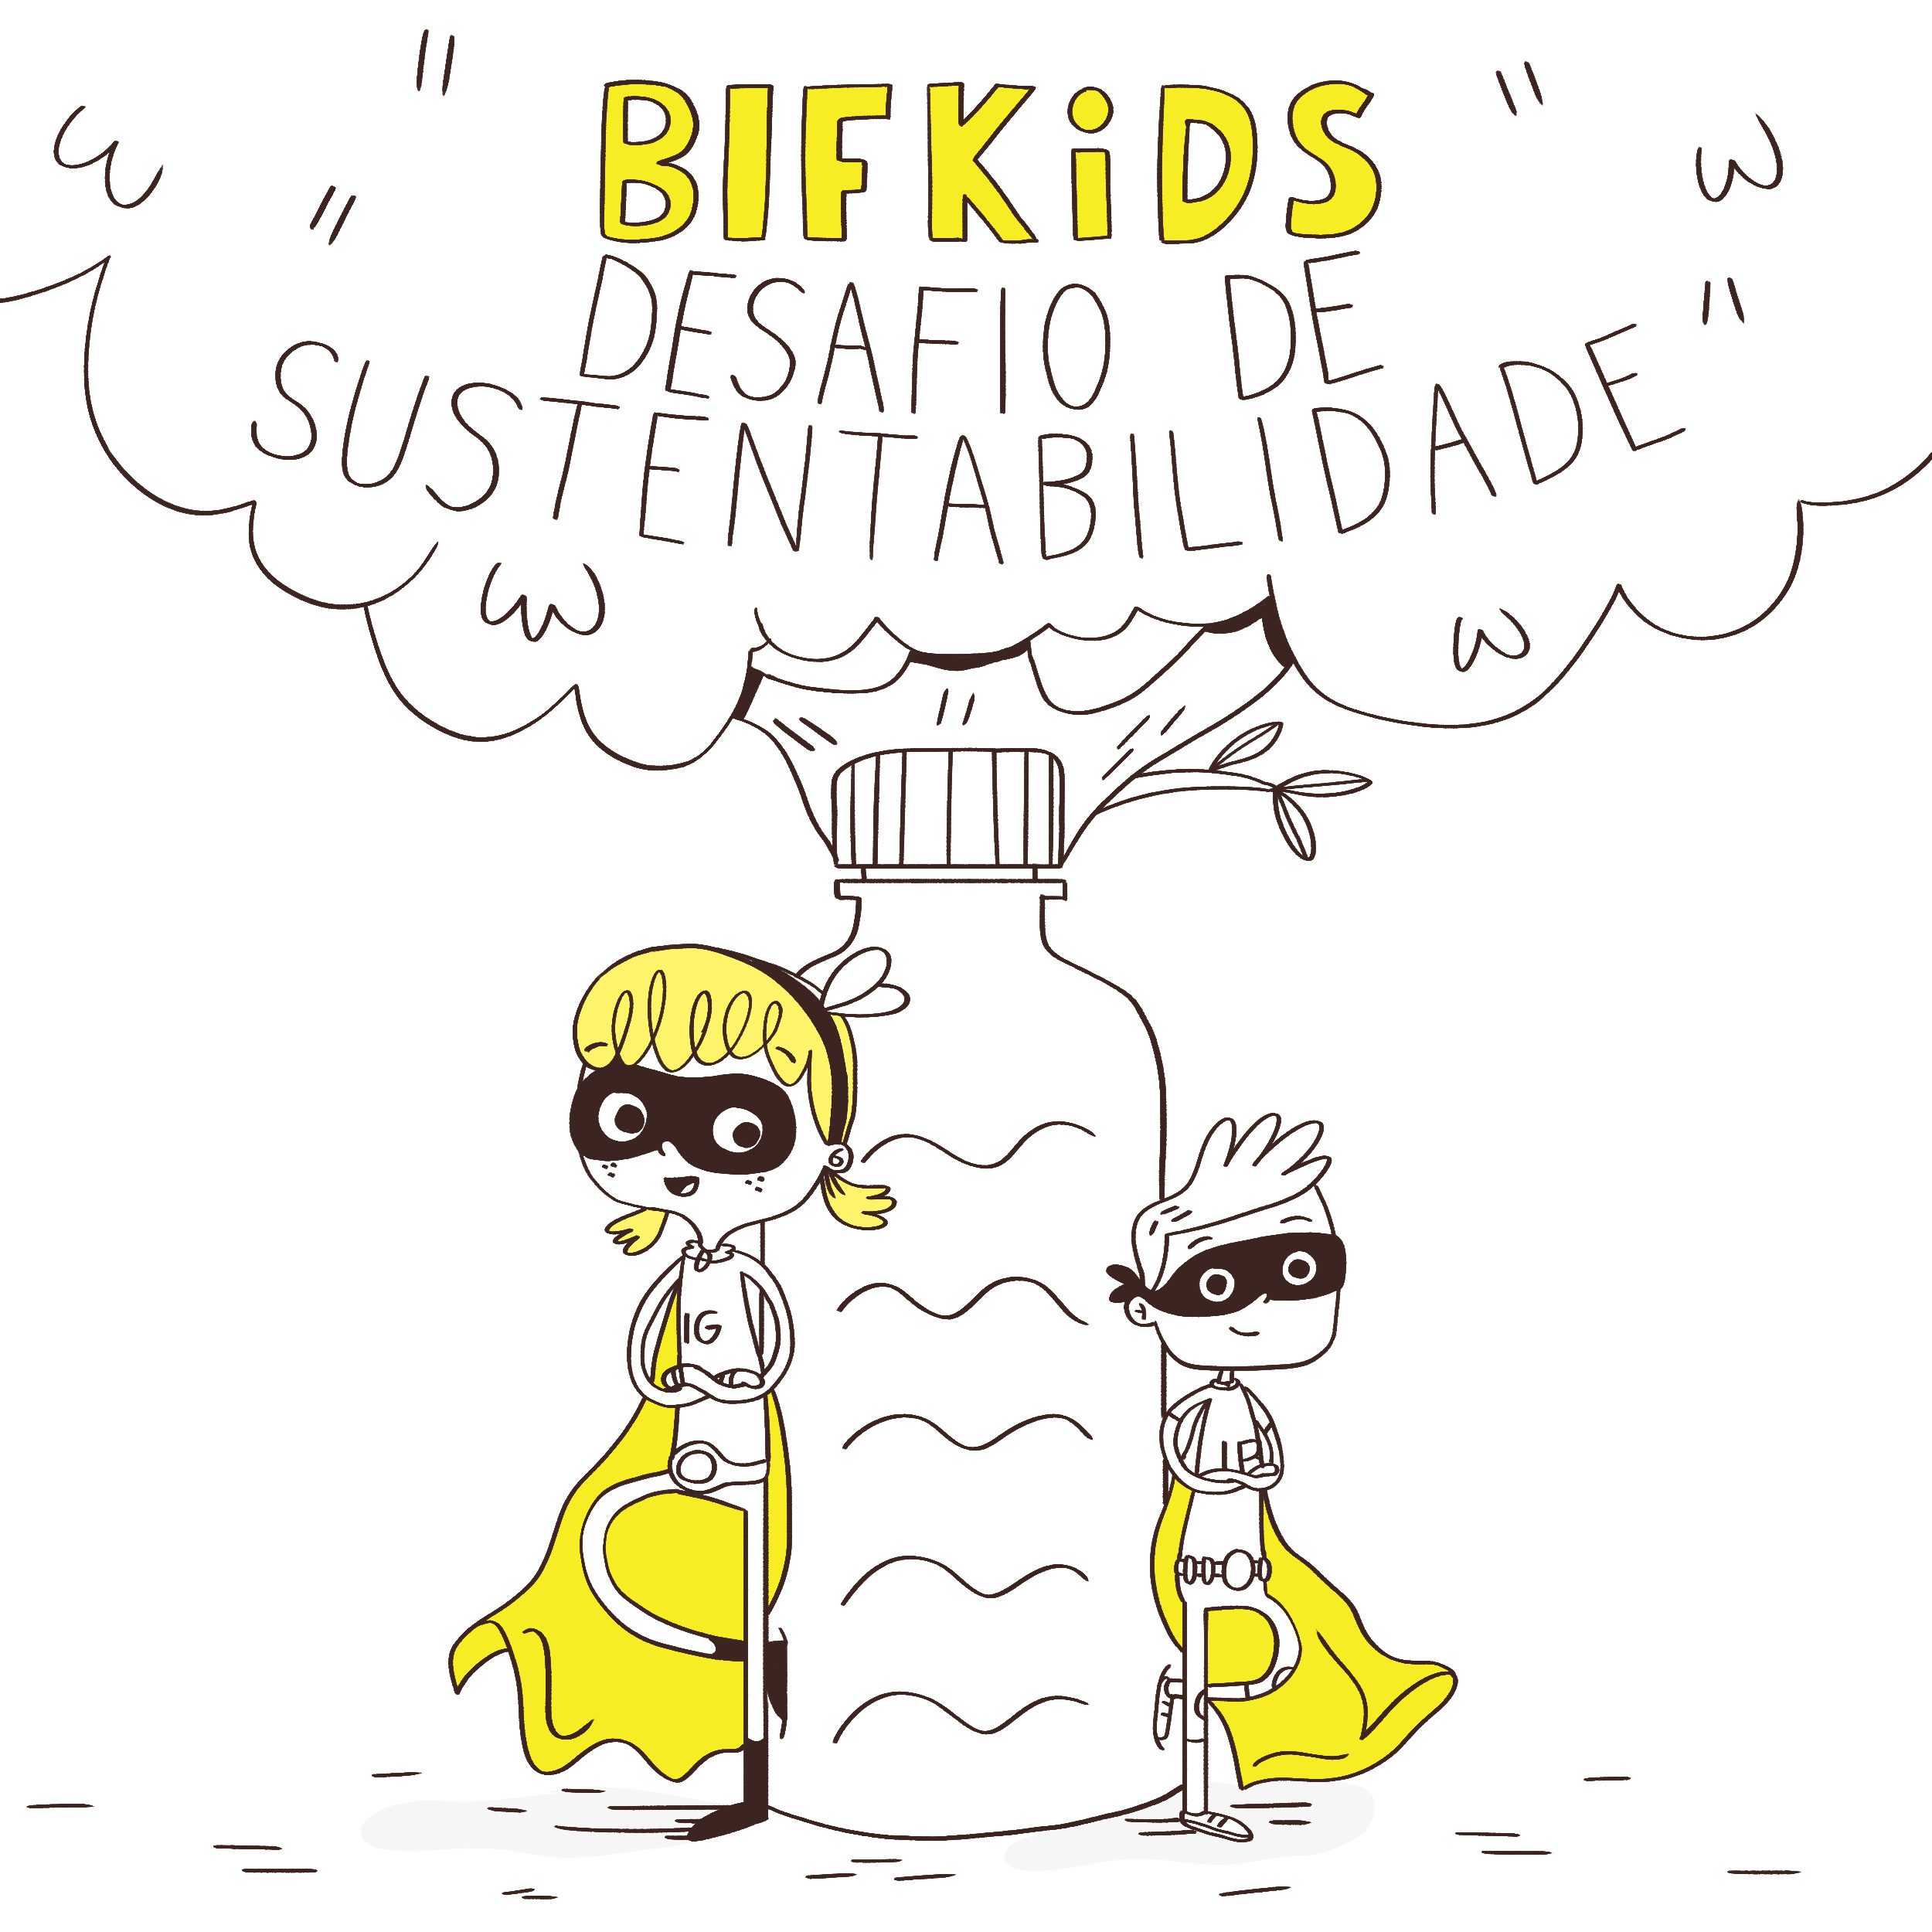 BIFKiDS-challenge-cover-portuguese.png